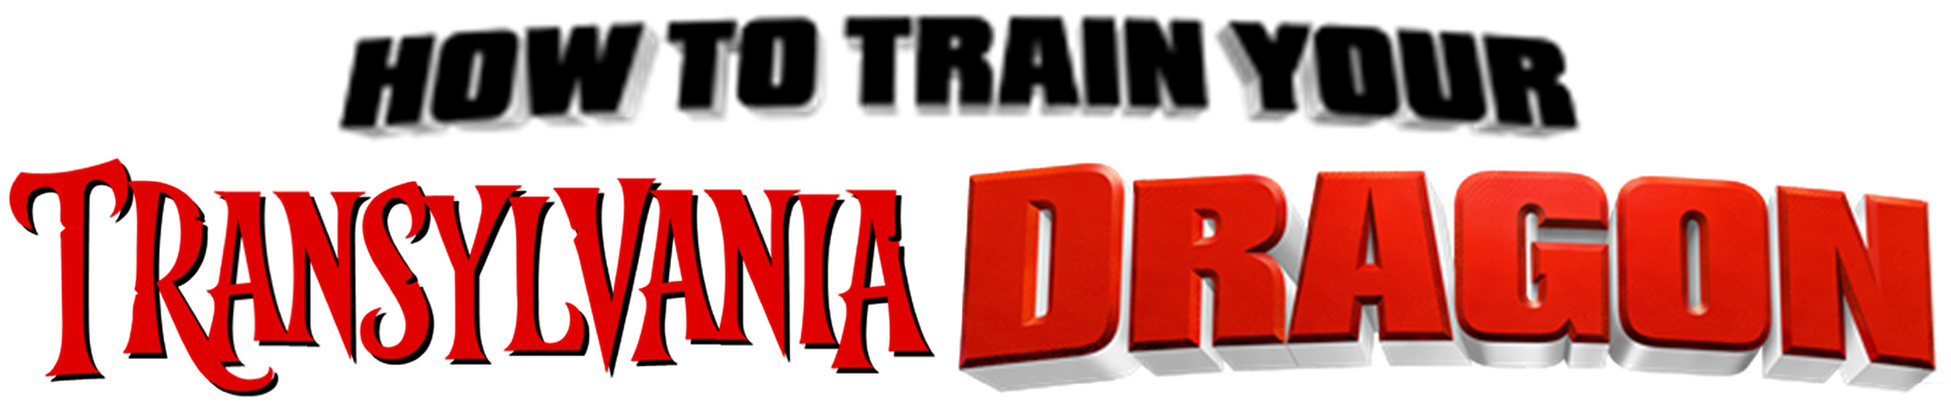 How to Train Your Transylvania Dragon Logo by Frie-Ice